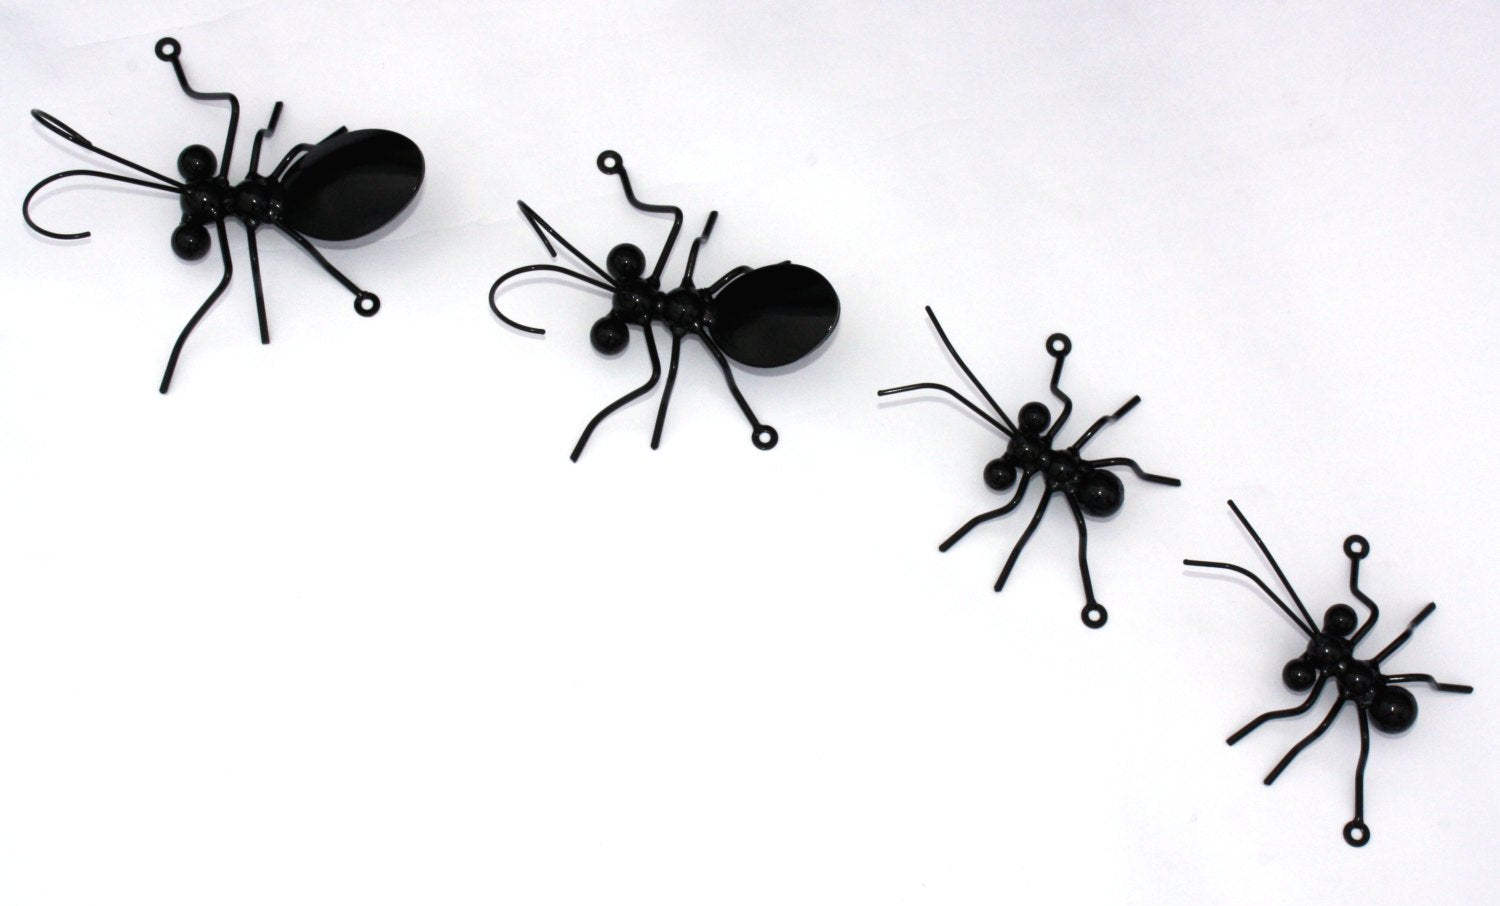 Ant Family 4Pc Set with 2 Large Ants + 2 Small Ants - Home, Garden & Yard Art Decorations.